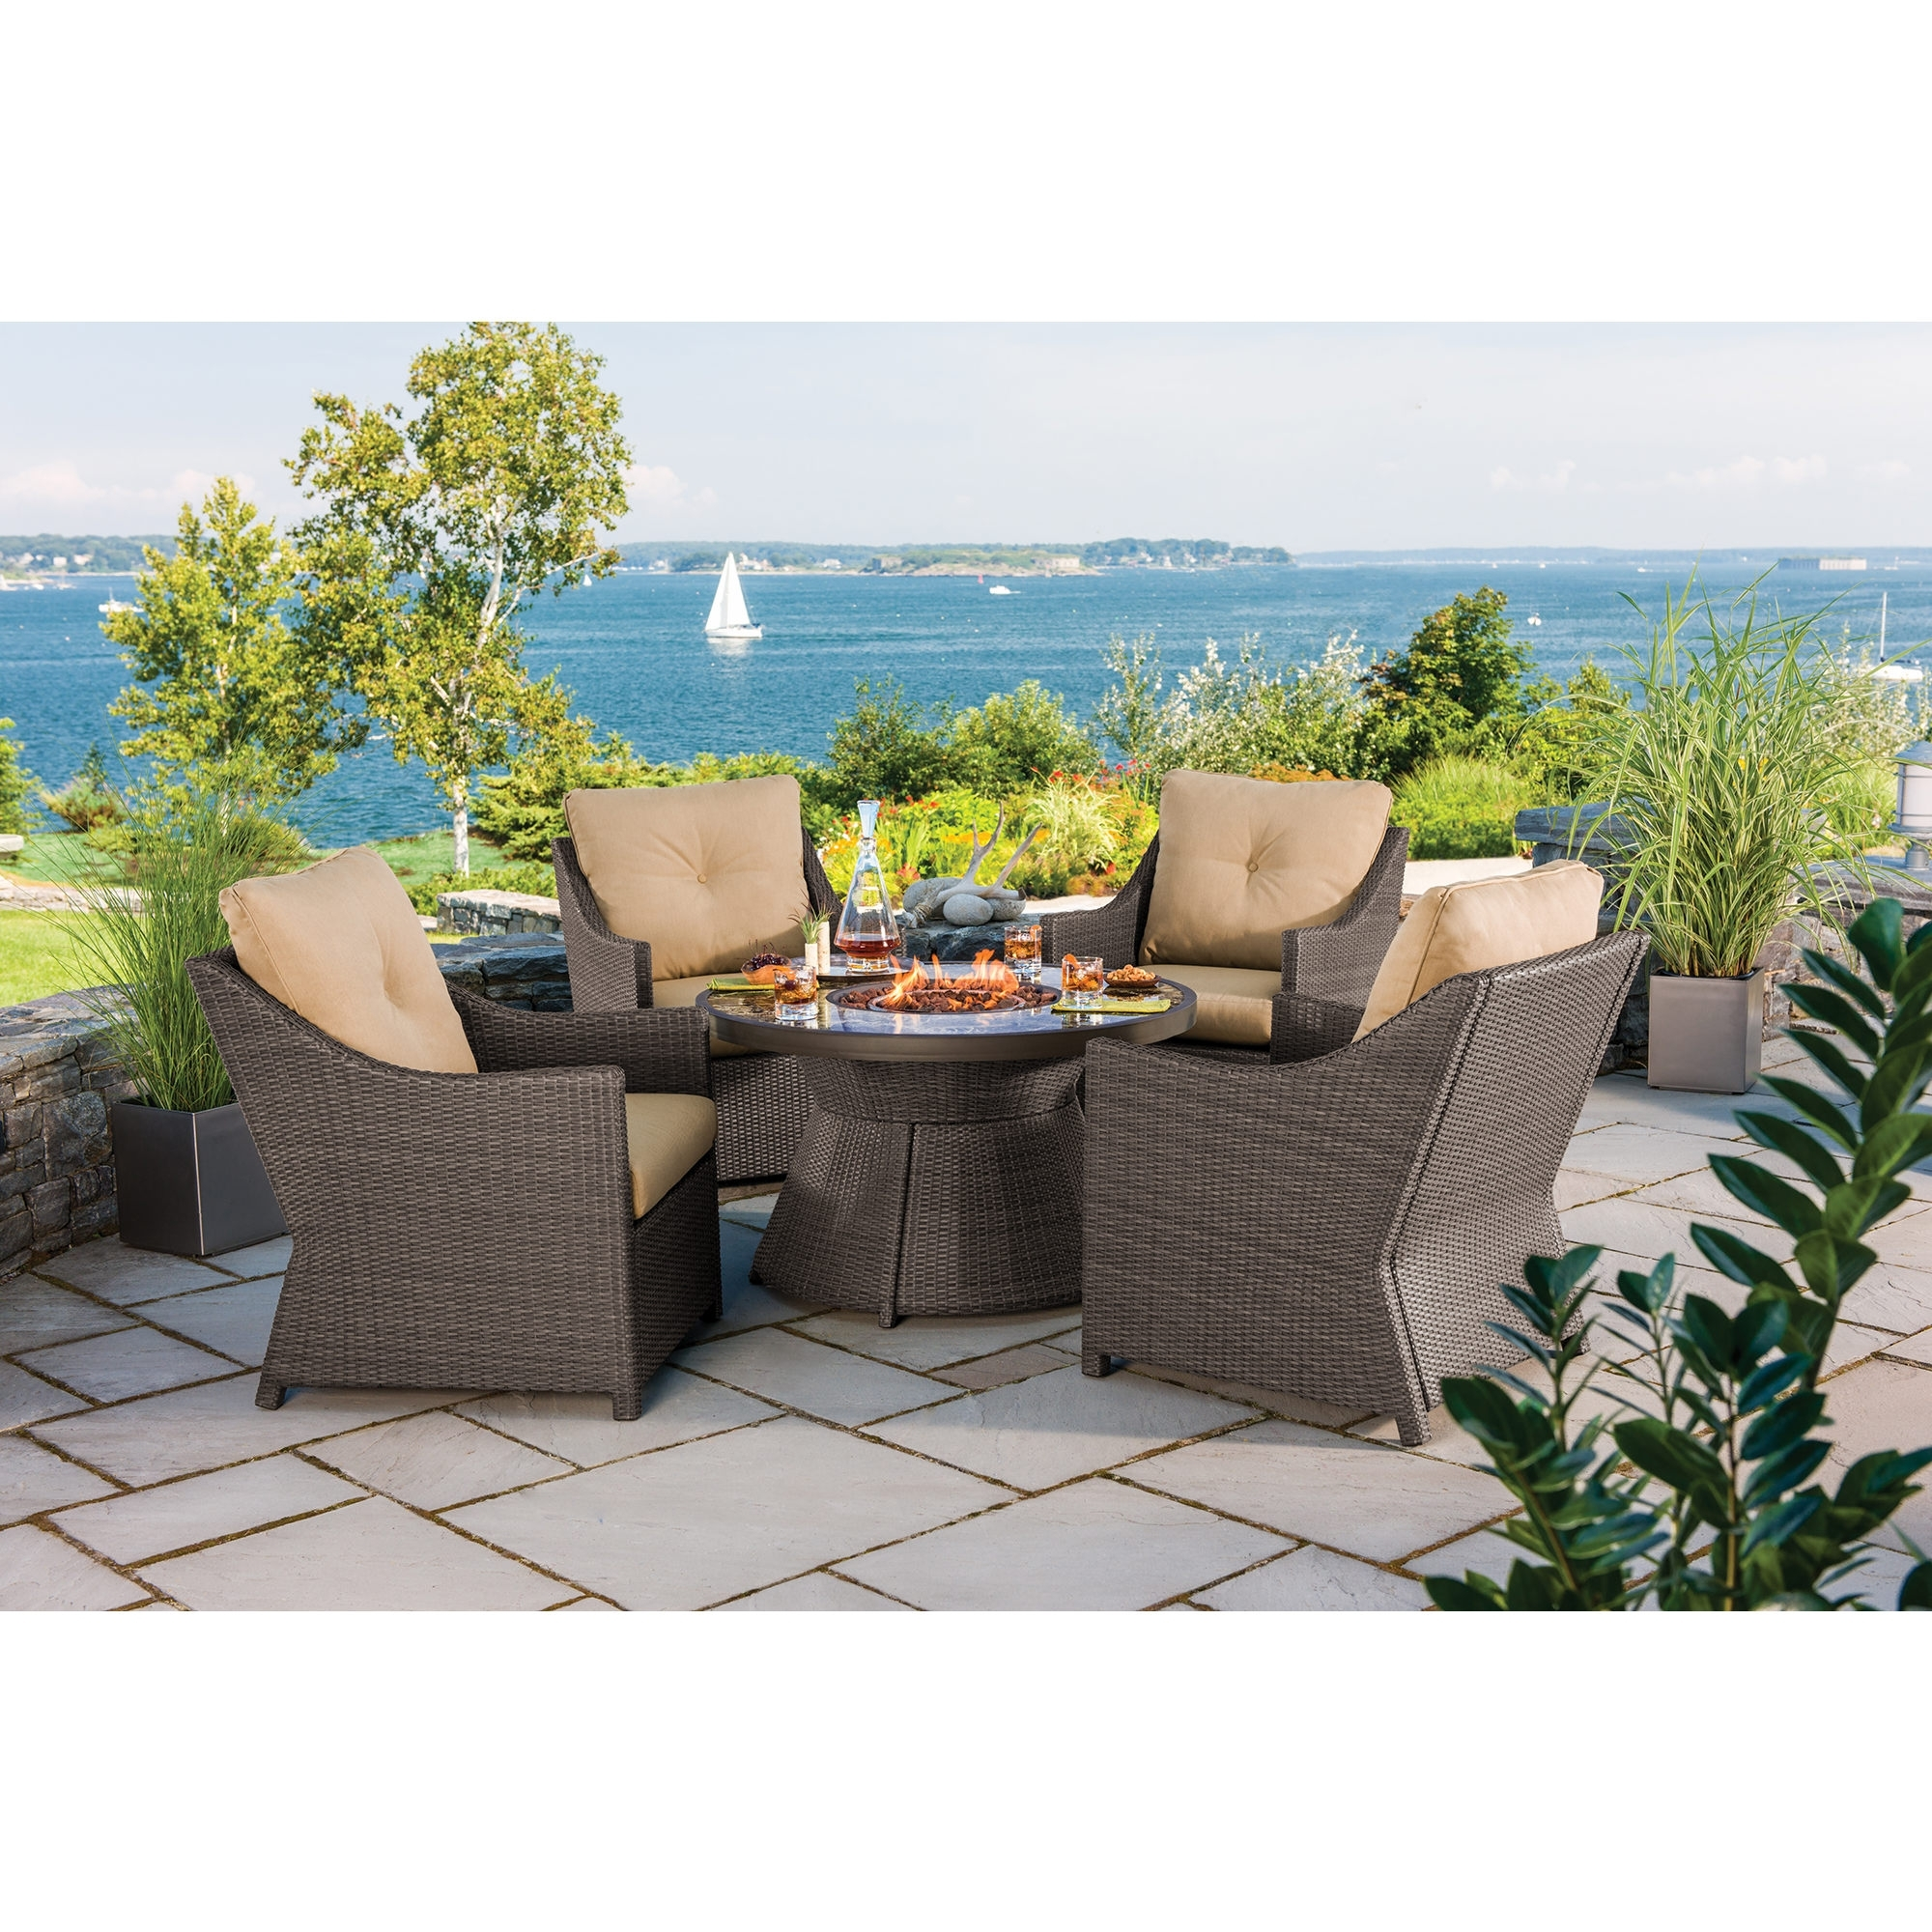 Recent Berkley Jensen Antigua Piece Wicker Fire Pit Chat Set Bjs Propane Throughout Patio Conversation Sets With Propane Fire Pit (View 19 of 20)